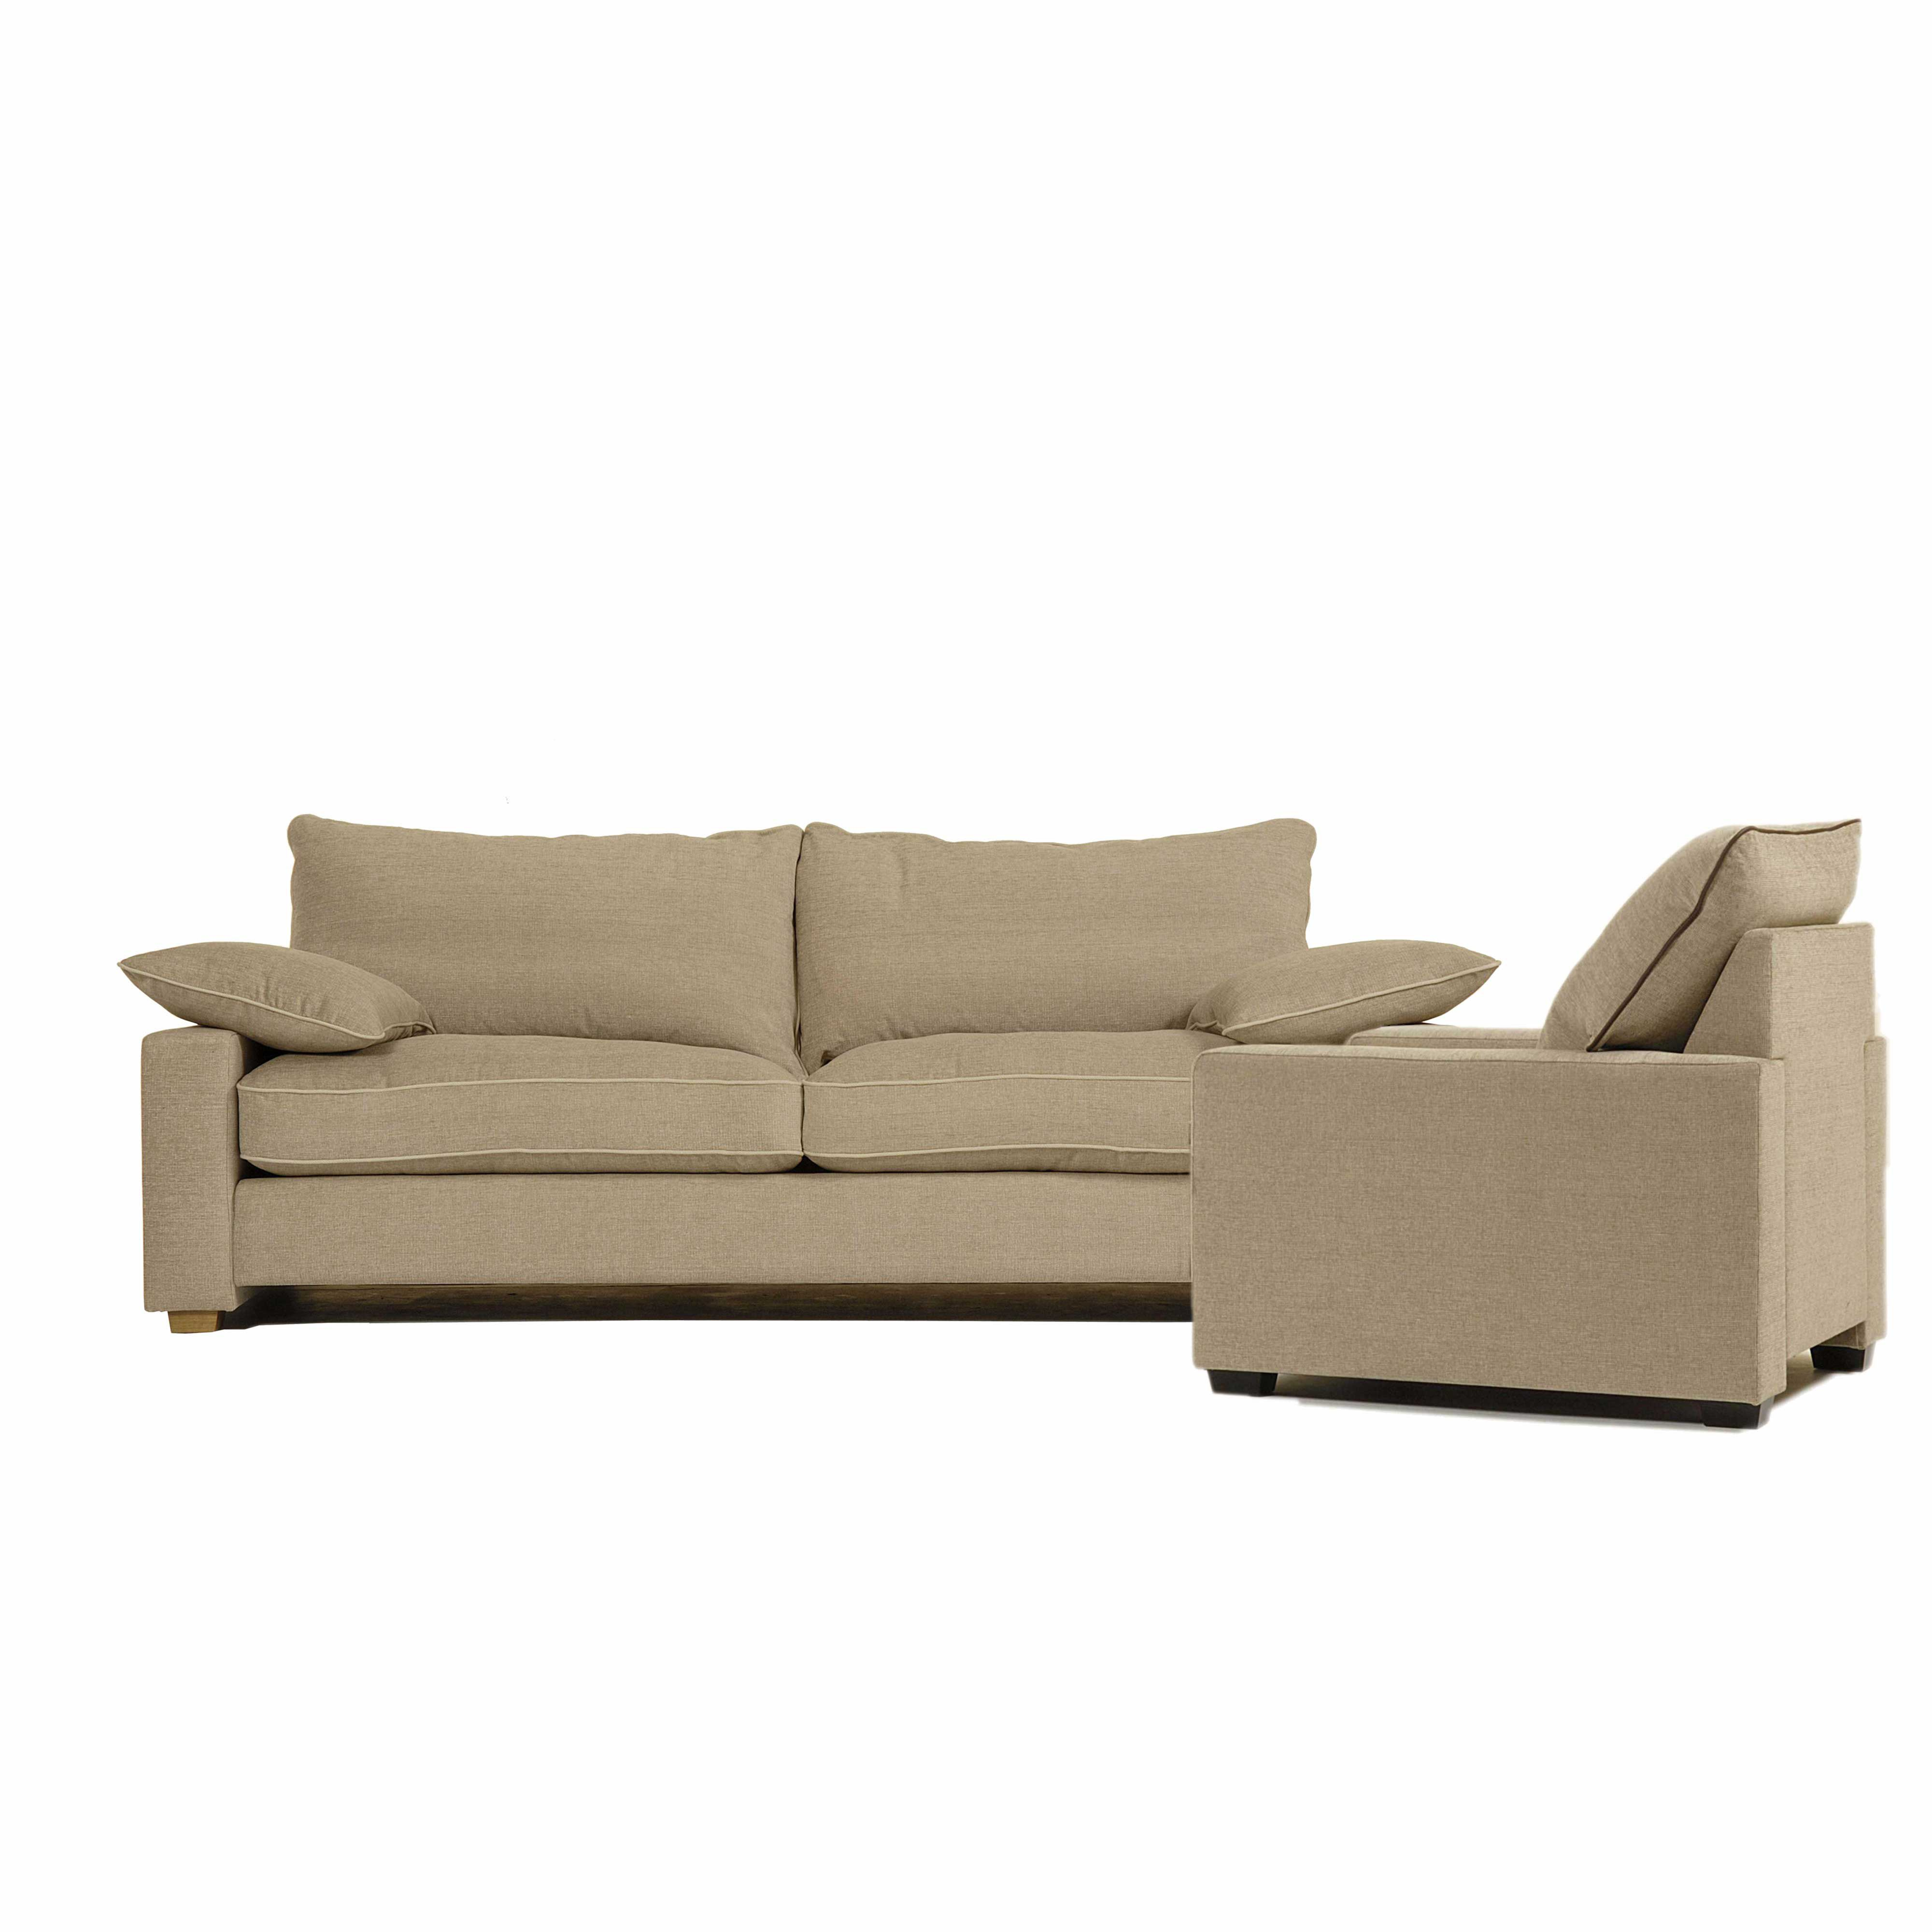 Sofas collins hayes petra extra large sofa for Big sofa technologies